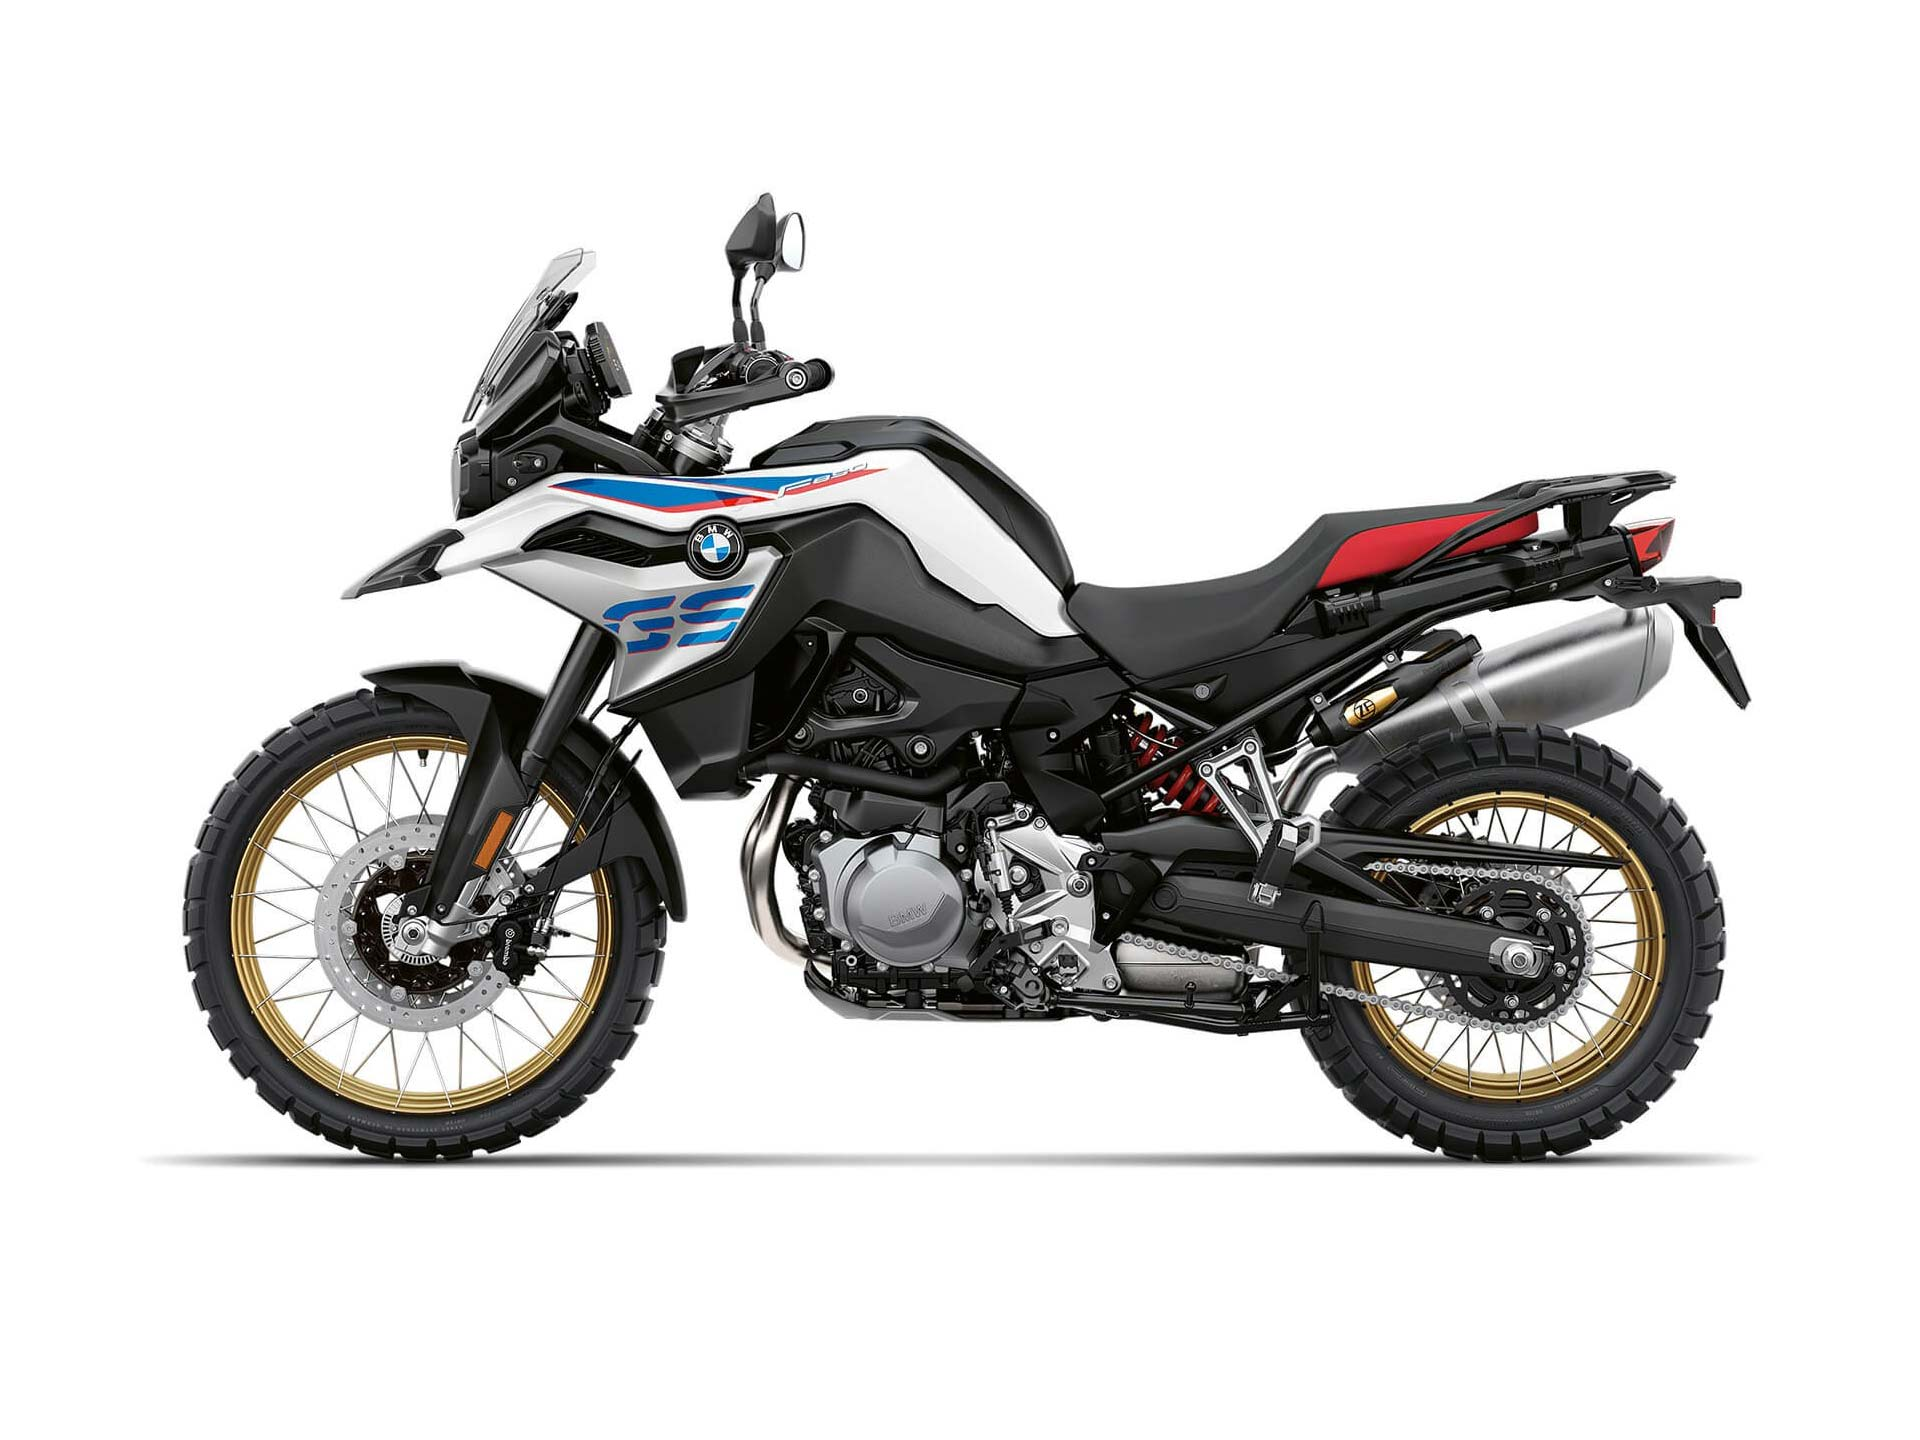 f 850 gs rallye x springwood bmw motorrad. Black Bedroom Furniture Sets. Home Design Ideas